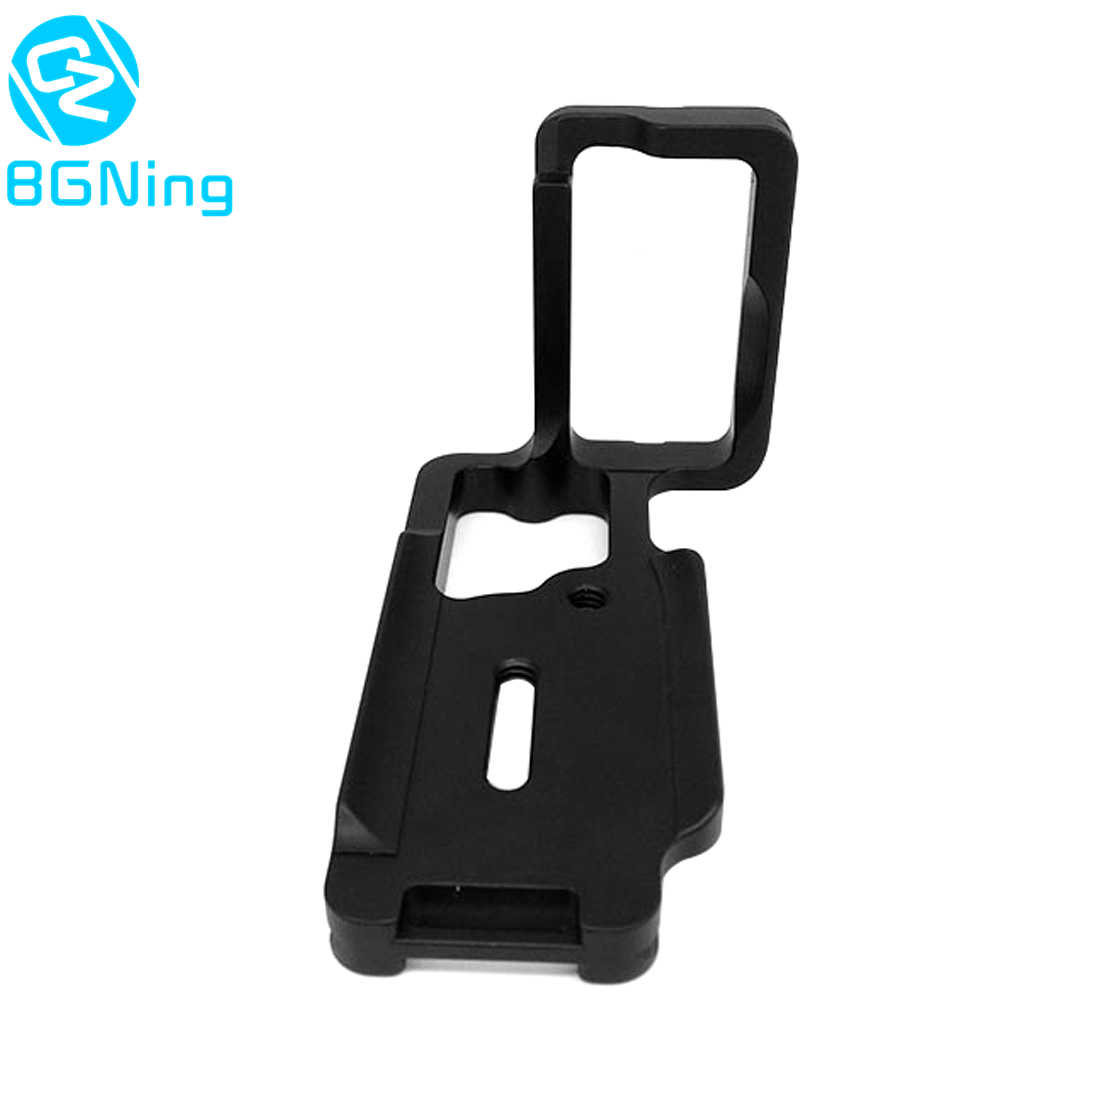 BGNing Vertical Quick Release L Plate for Canon 6D2 6dii 6d Mark II Camera Bracket Holder Mount Hand Grip Arca-swiss RRS Tripod